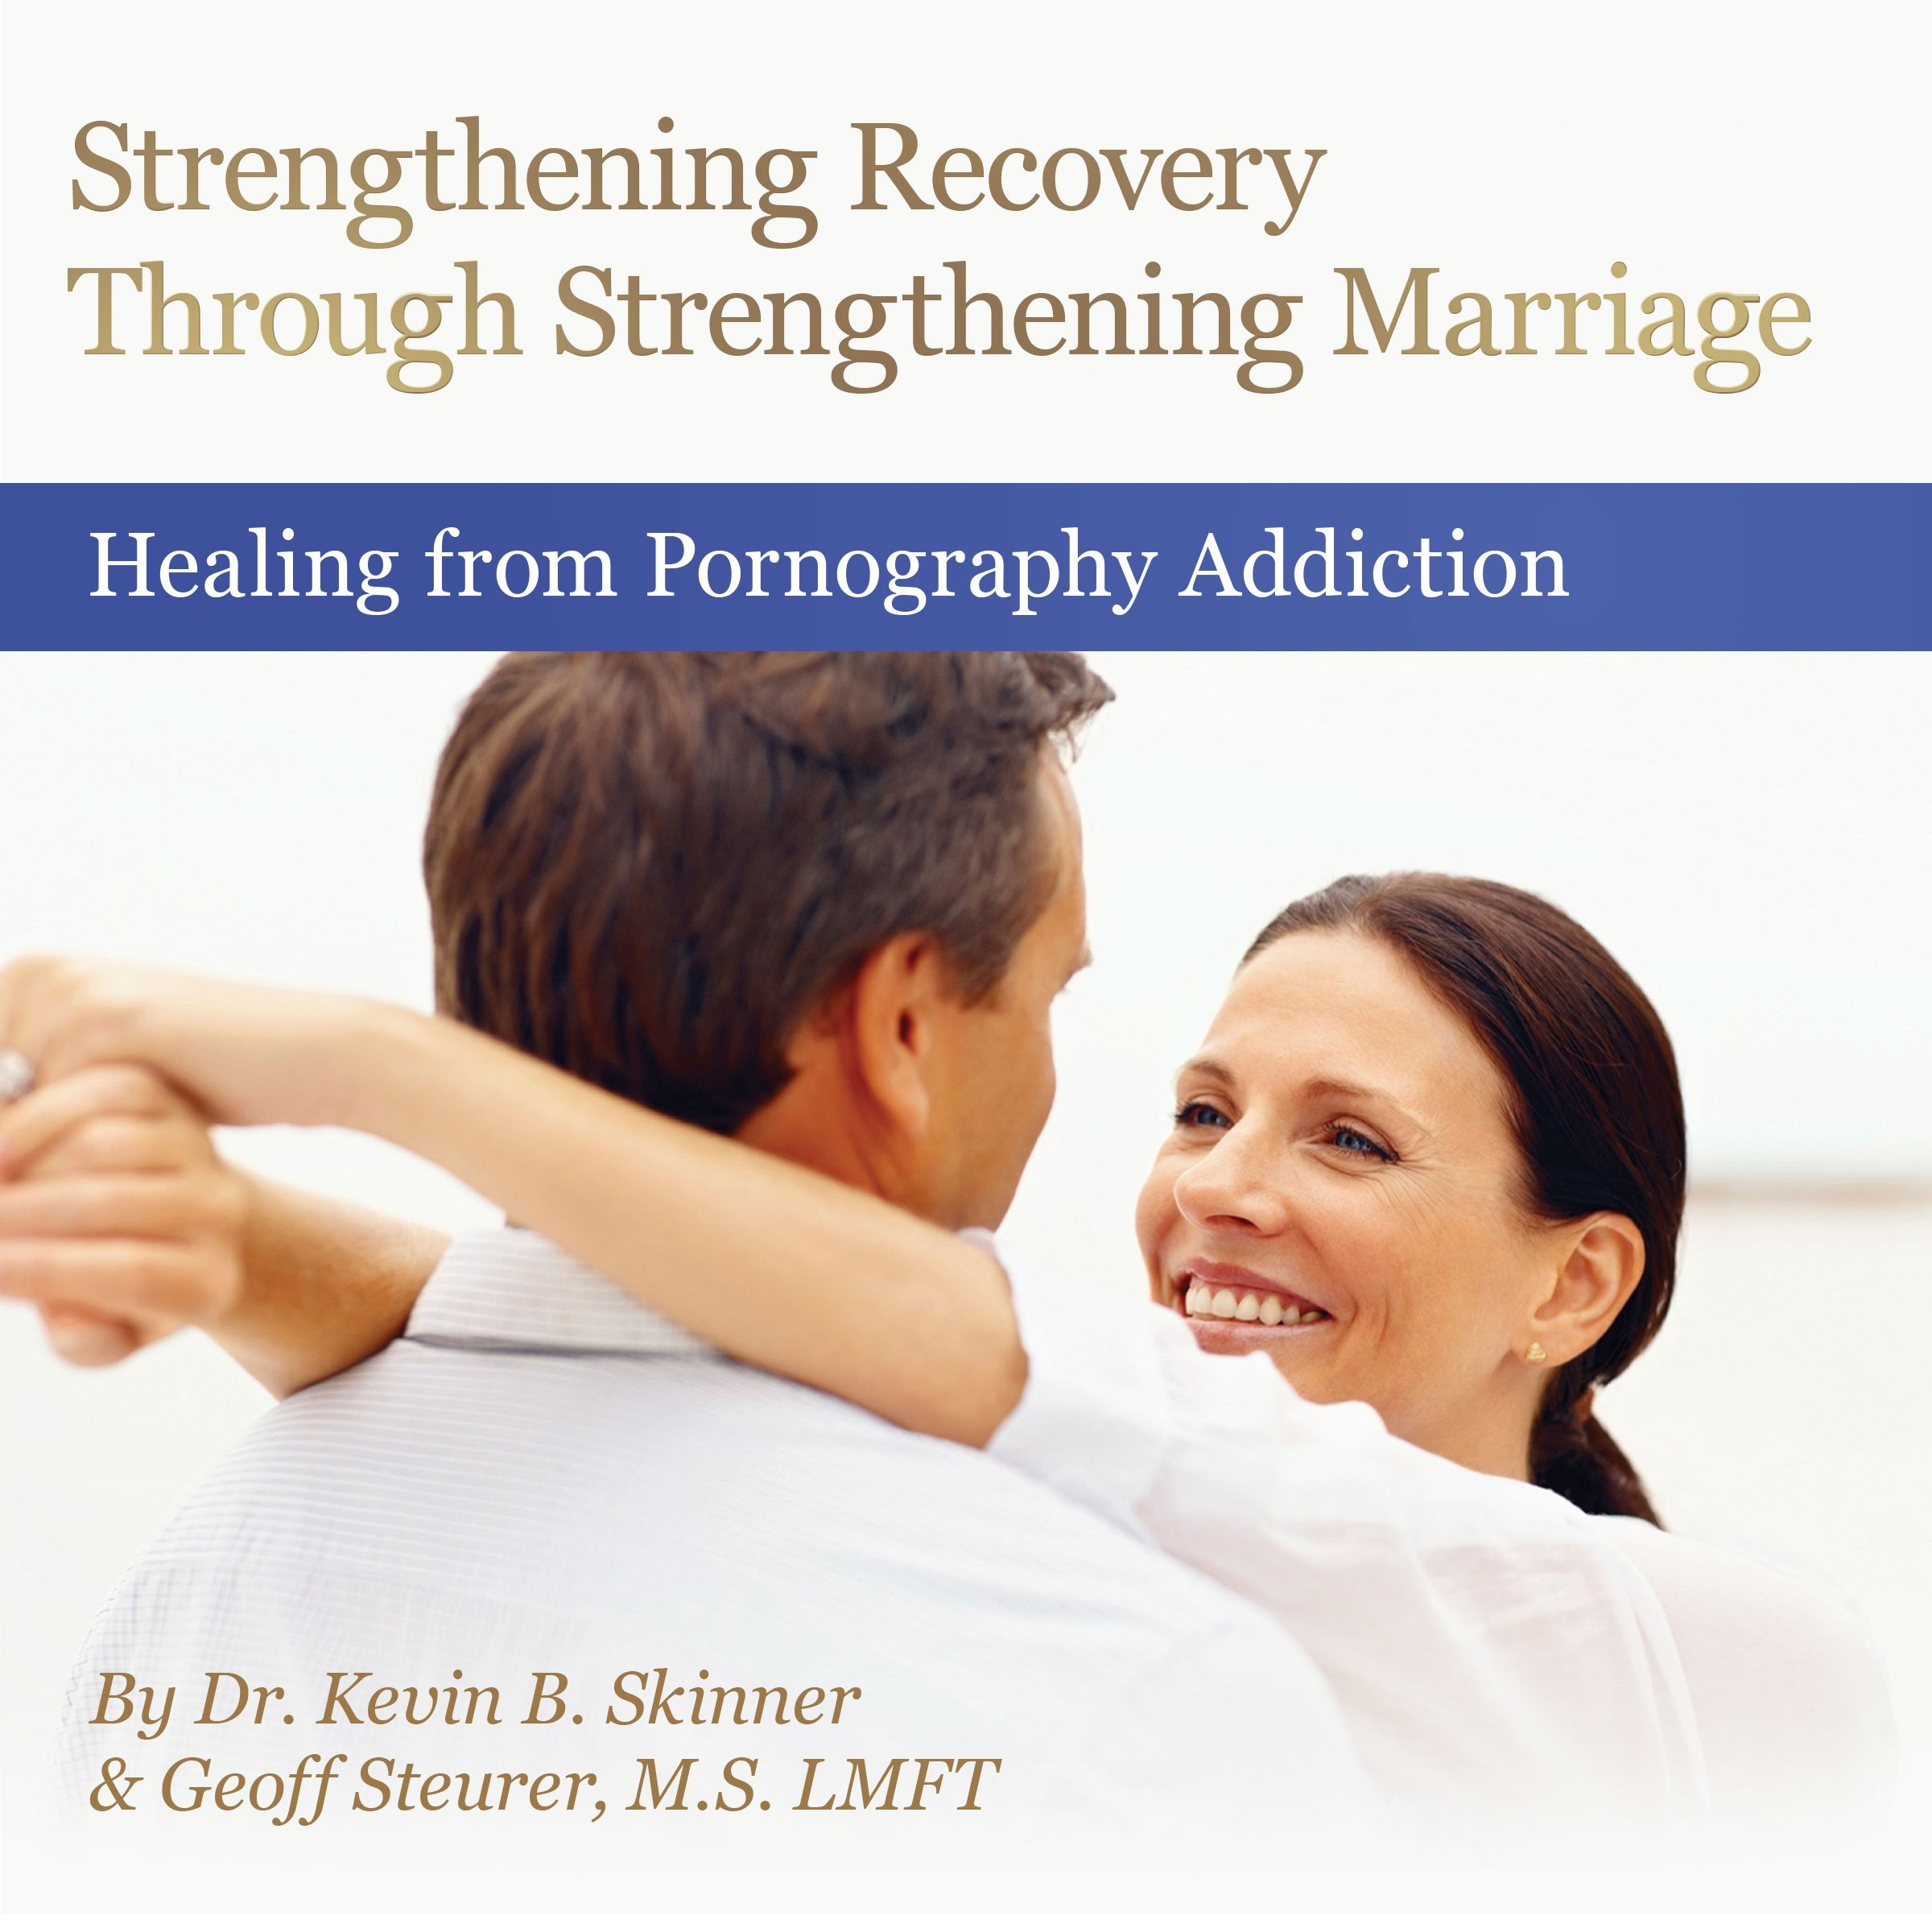 Strengthening Recovery through Strengthening Marriage, Skinner, Kevin PhD with Geoff Steurer, M.S., LMFT